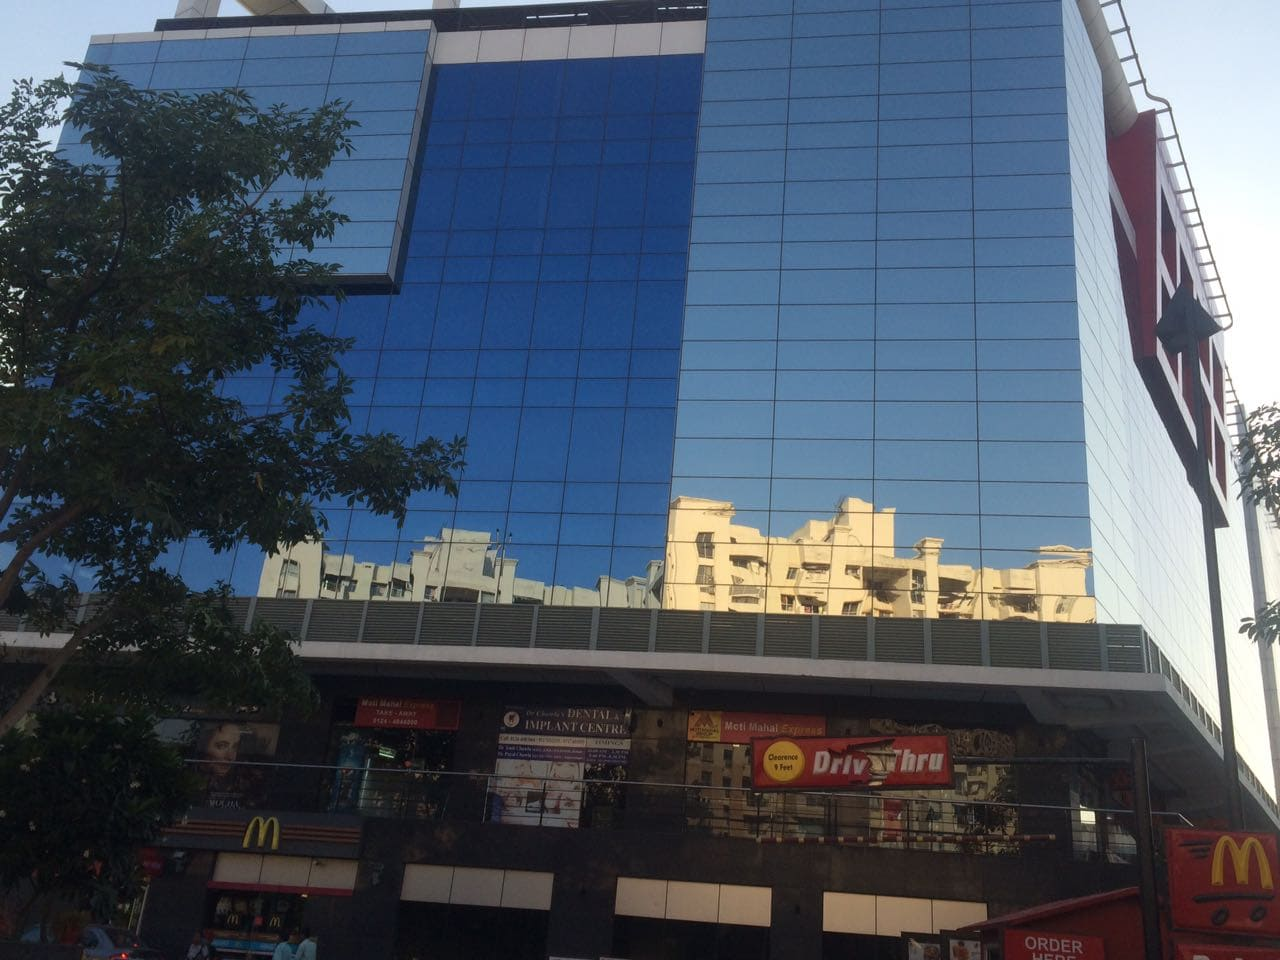 commercial projects, pre leased property in gurgaon, pre leased property for sale in gurgaon